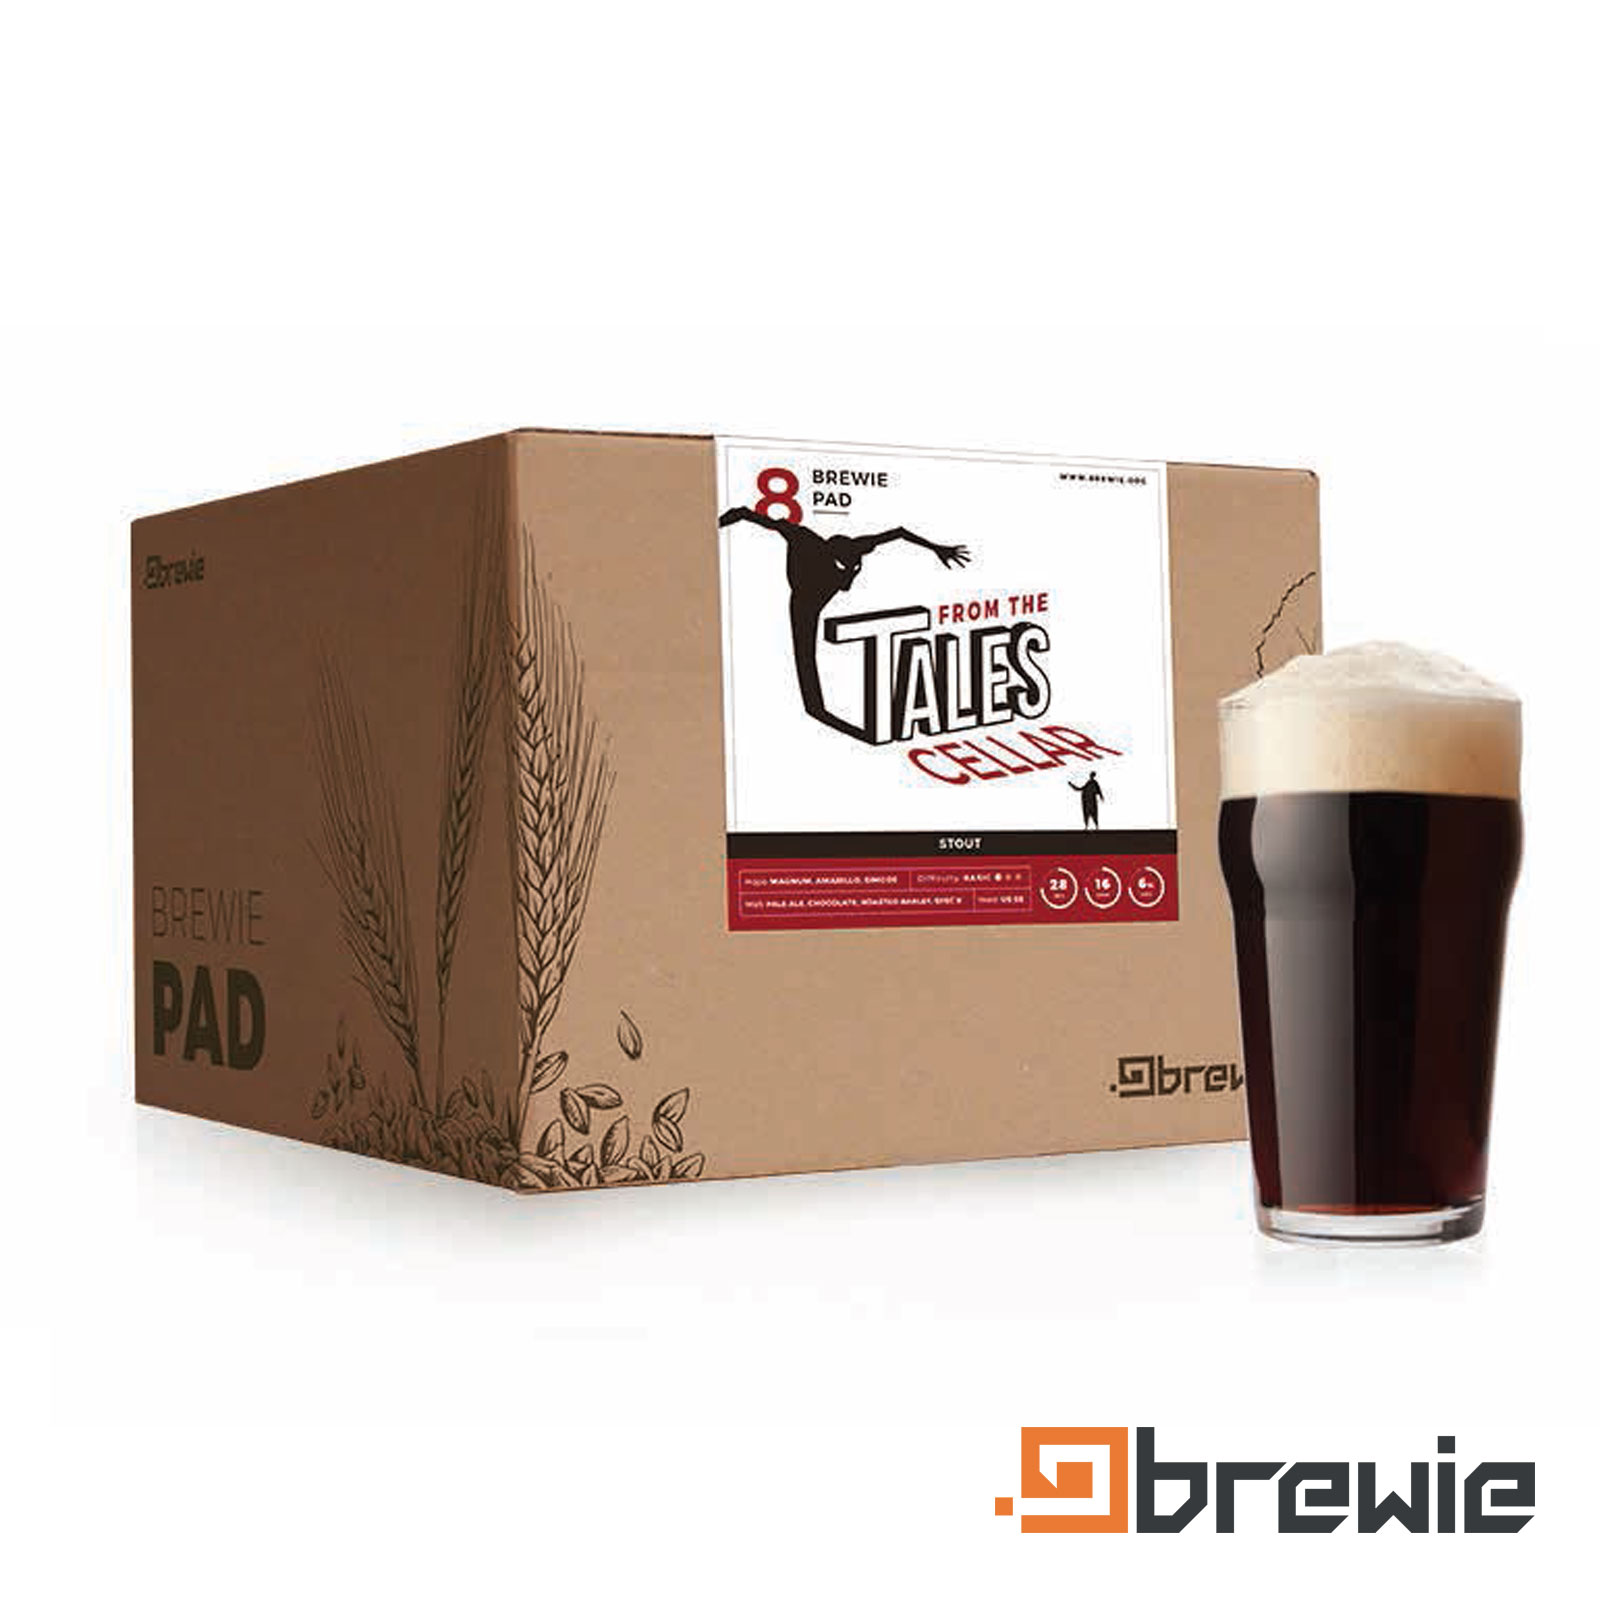 Kit All grain Brewie Tales from the Cellar American Stout